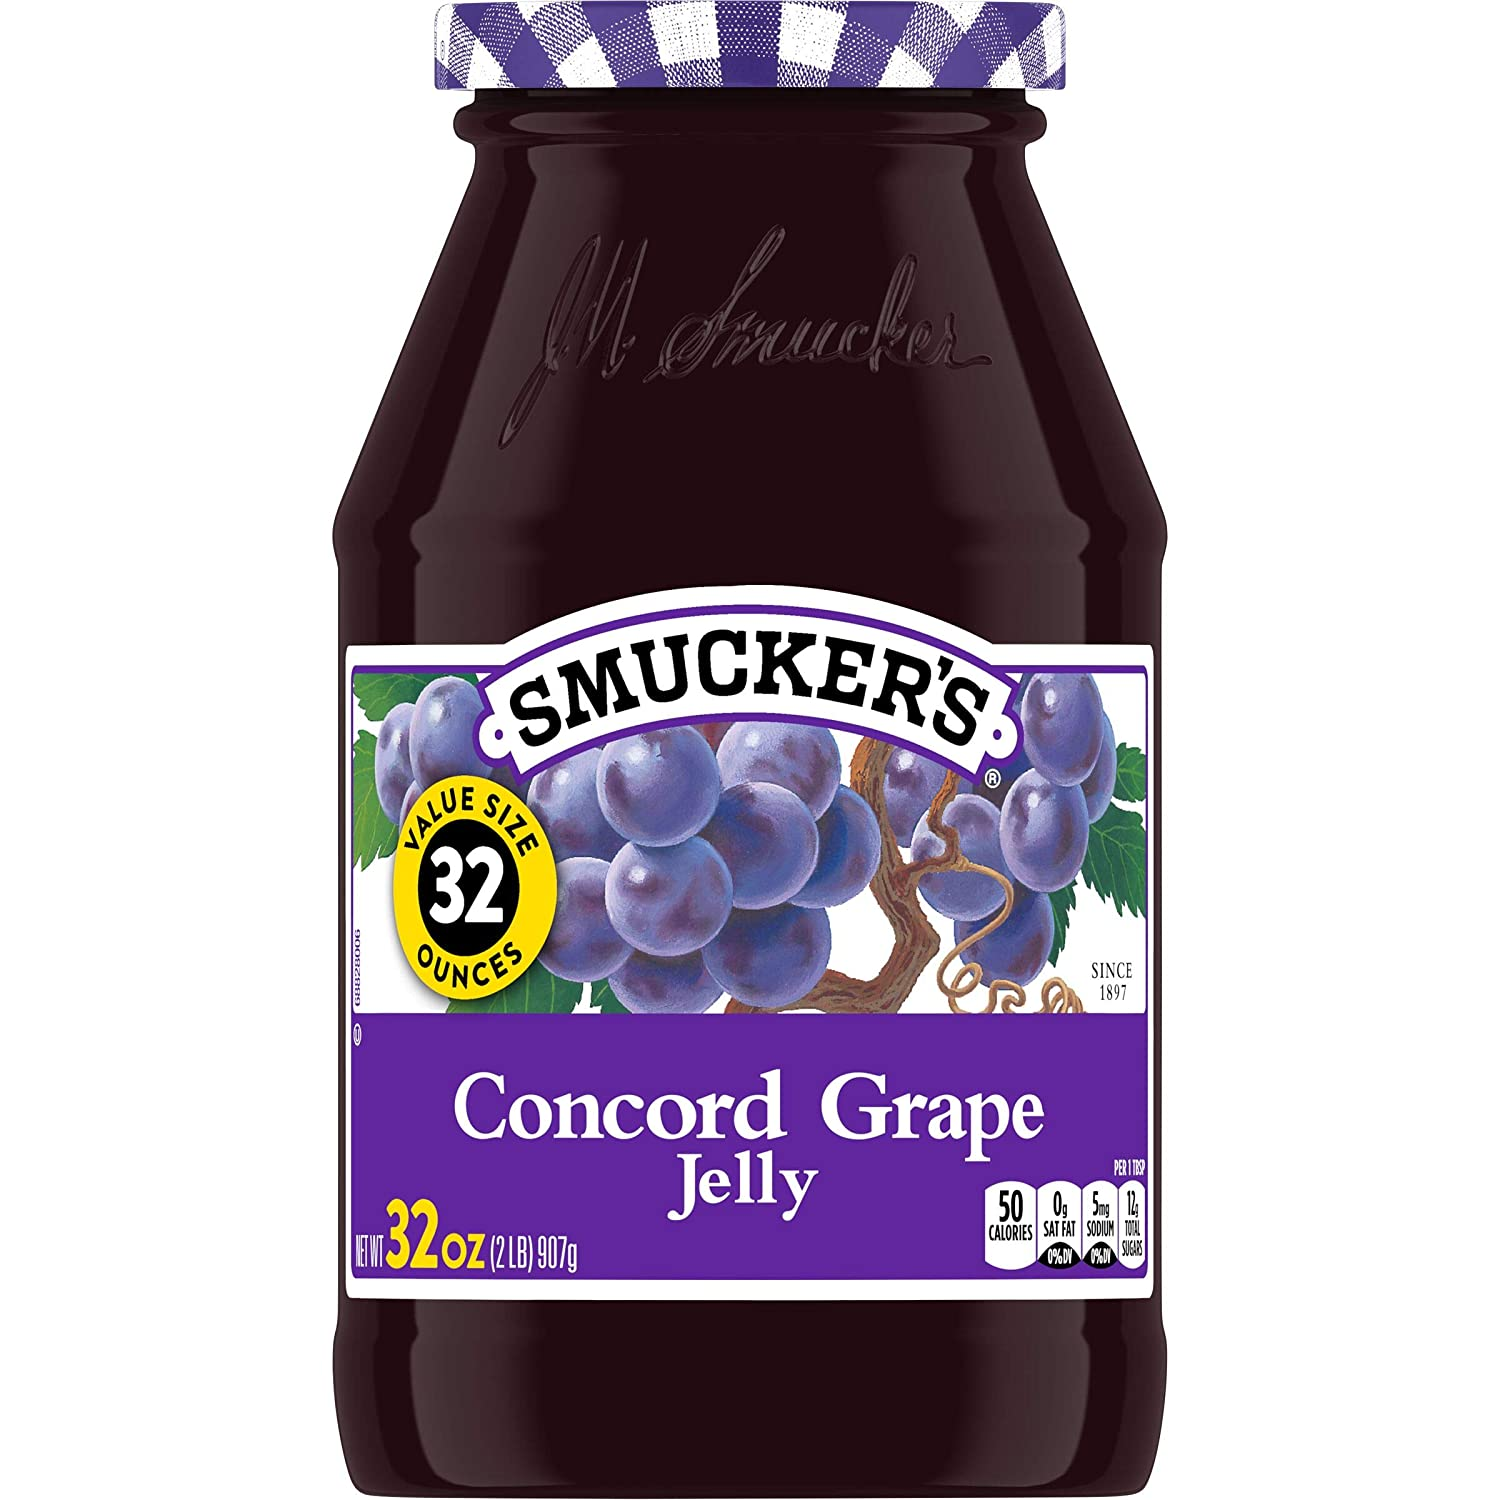 Smucker's Concord Grape Jelly, 32 Ounces